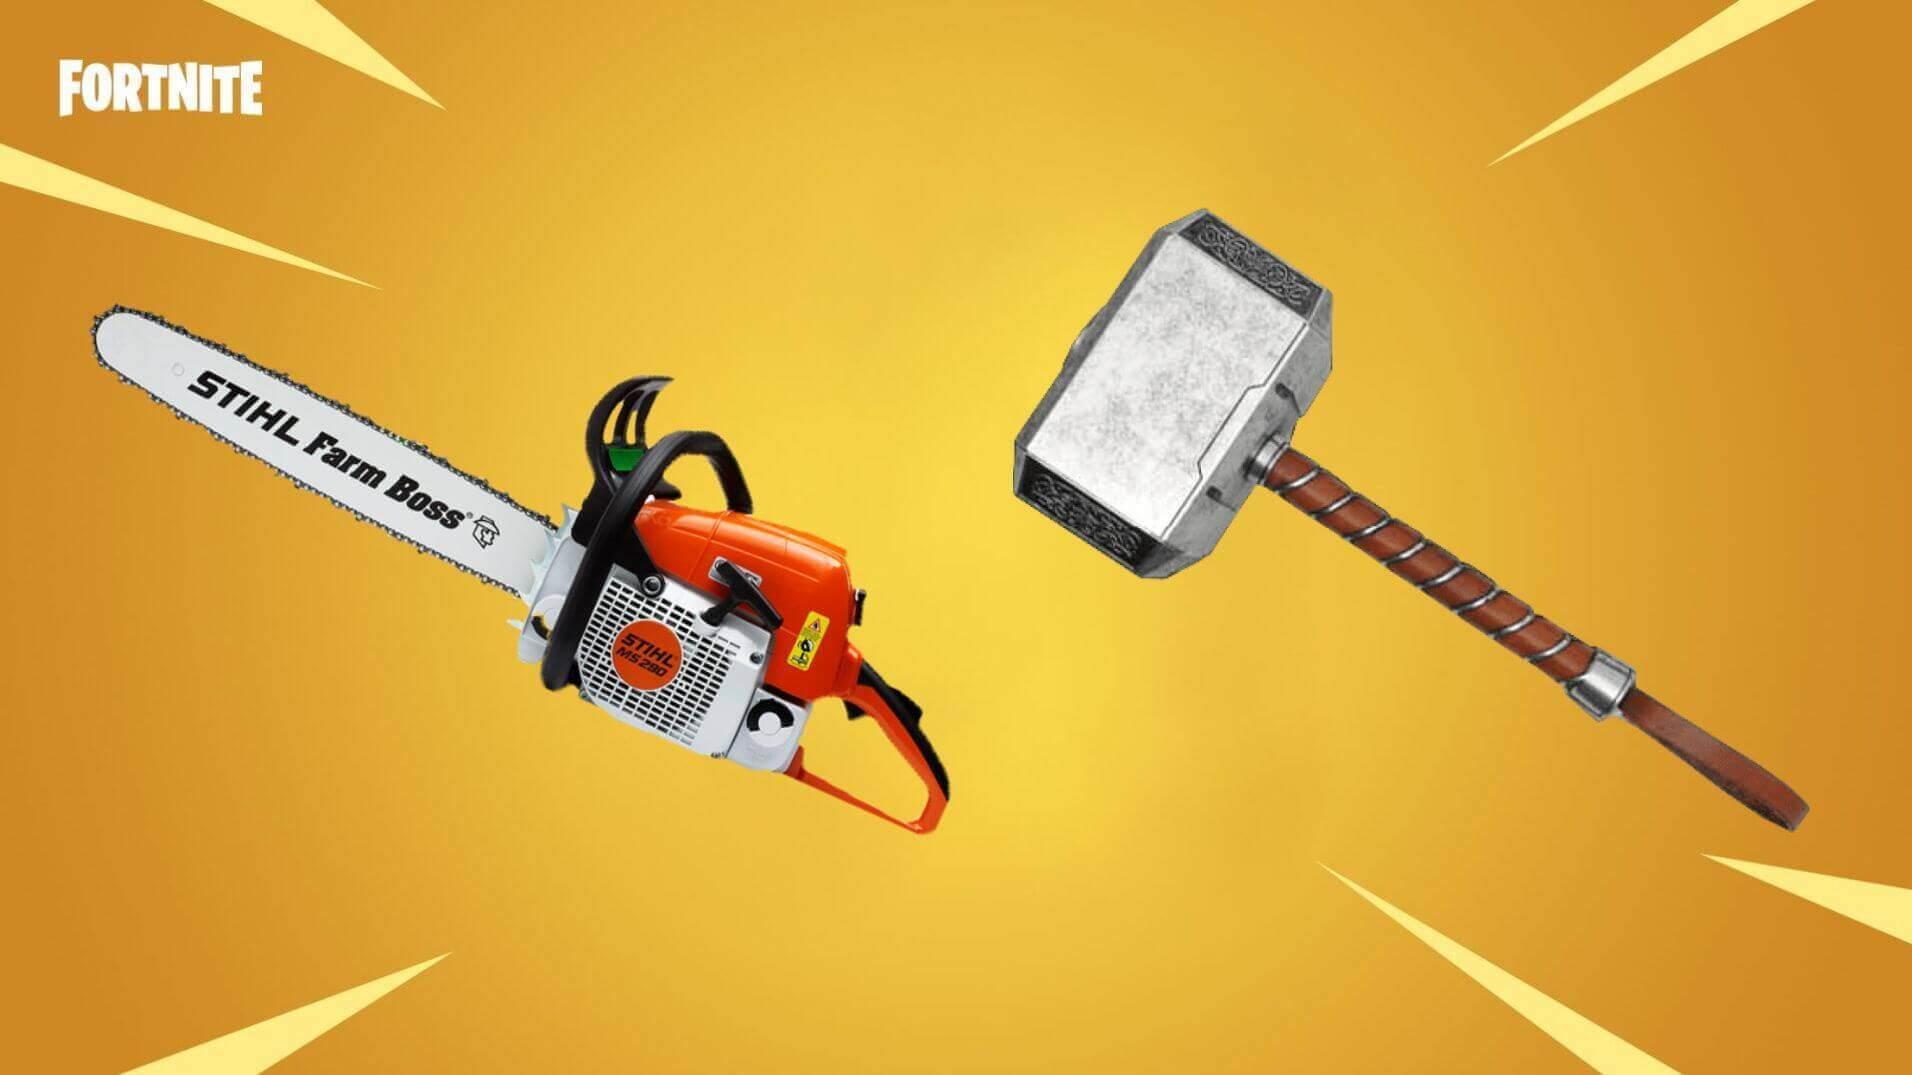 Should Fortnite add an item that speeds up material farming?